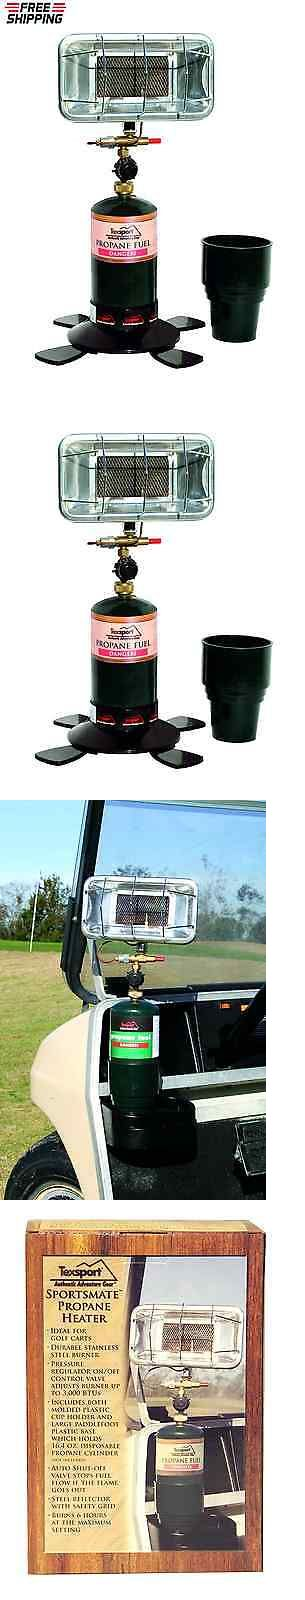 Generators and Heaters 16039: Texsport Portable Propane Heater For Golf Cart, Camping, Fishing Boat, Outdoor BUY IT NOW ONLY: $56.18